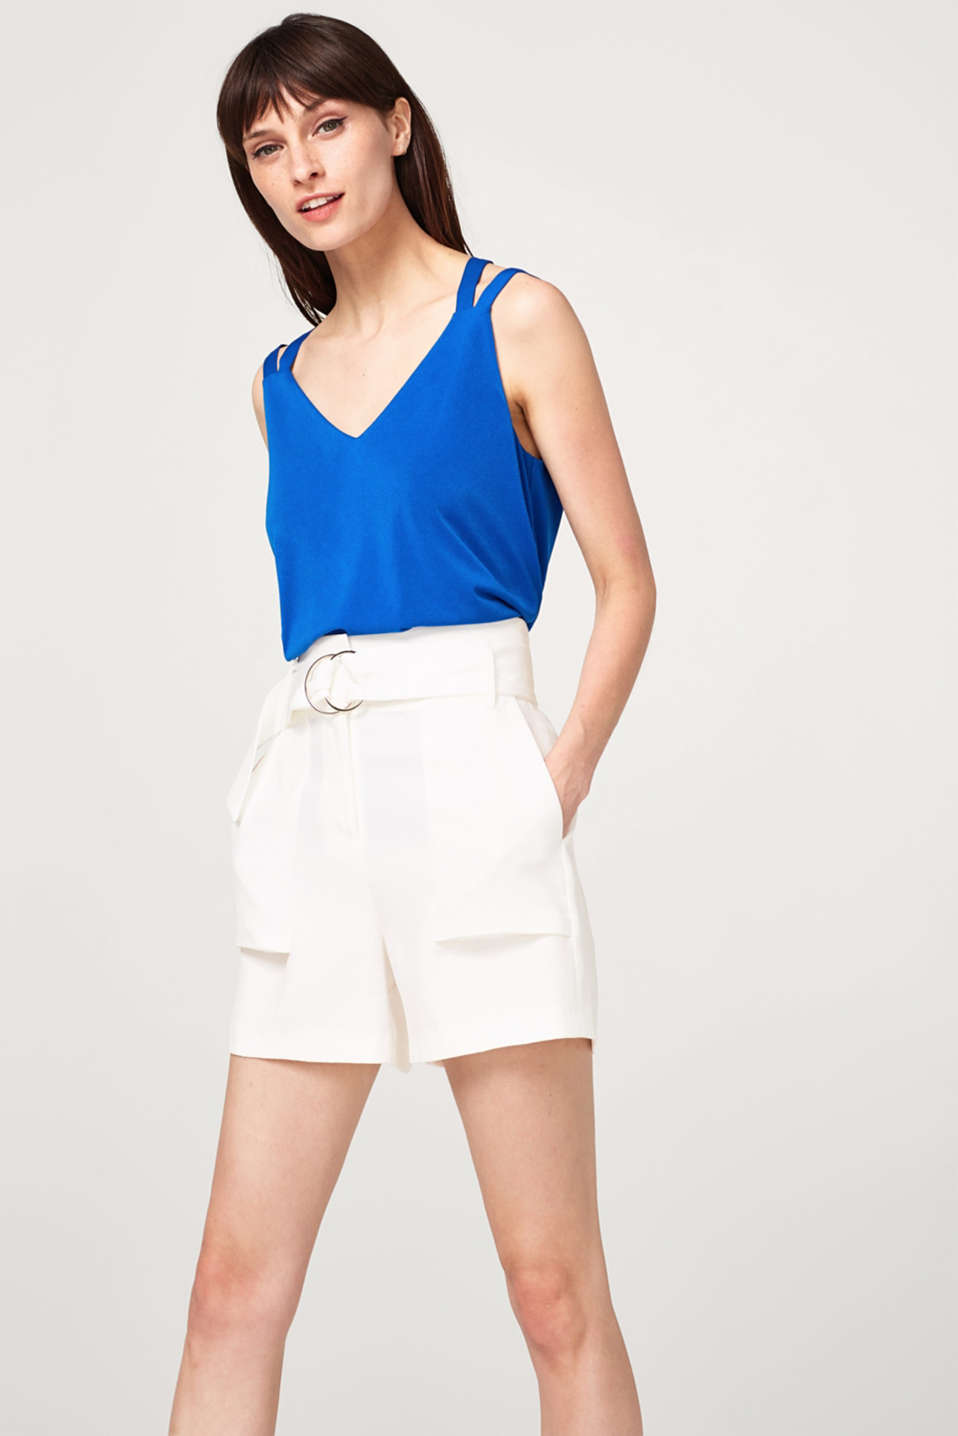 Esprit - Stretch jersey top with crossed-over, double-layer straps